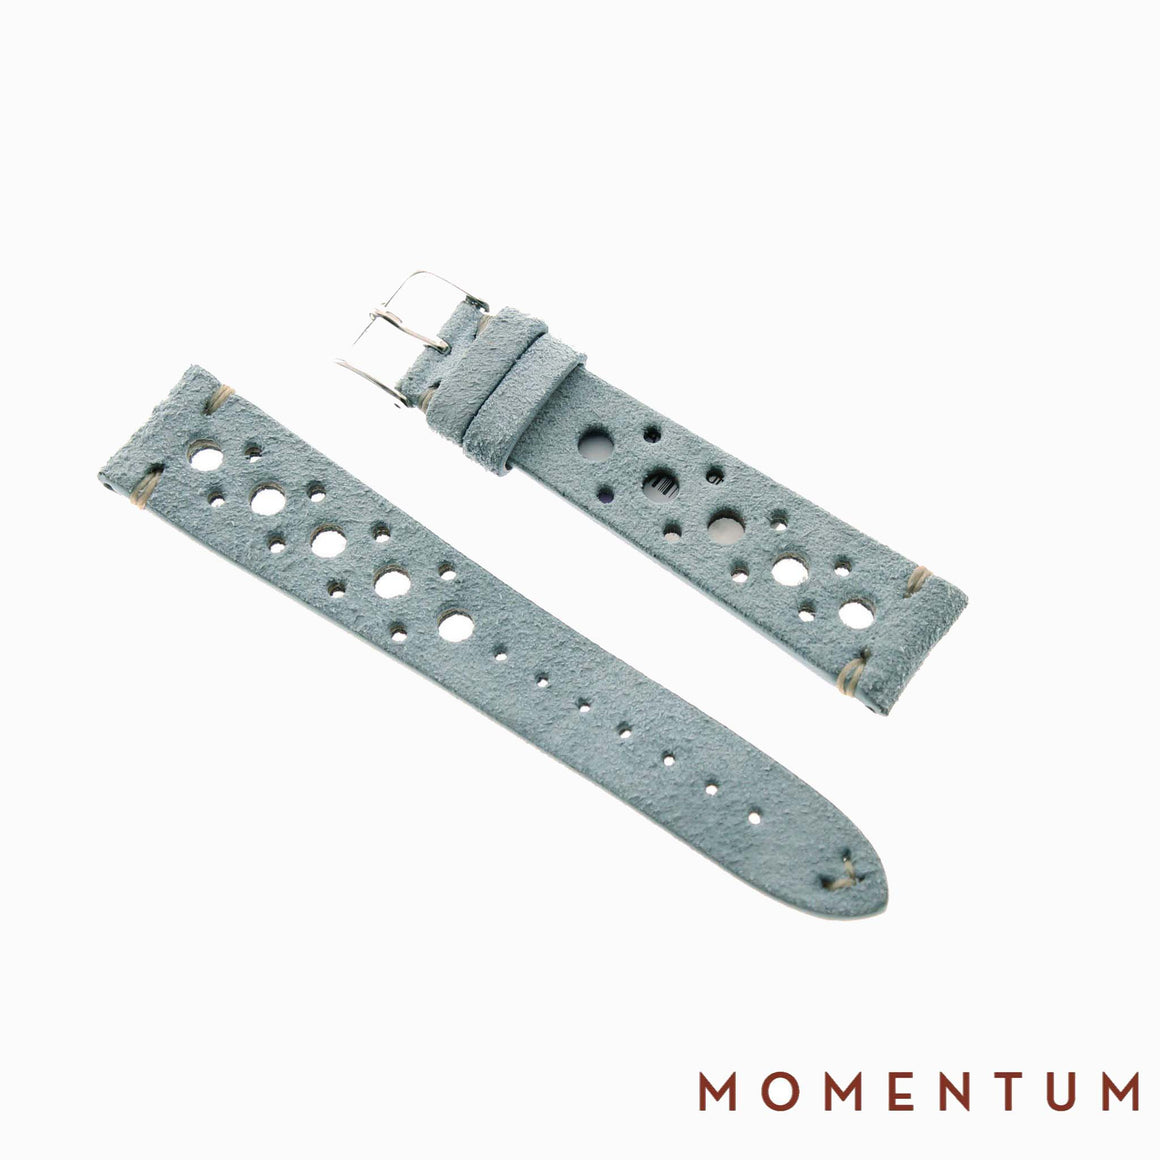 Vintage Strap - Baby Blue Suede with holes - Calf Leather - Momentum Dubai